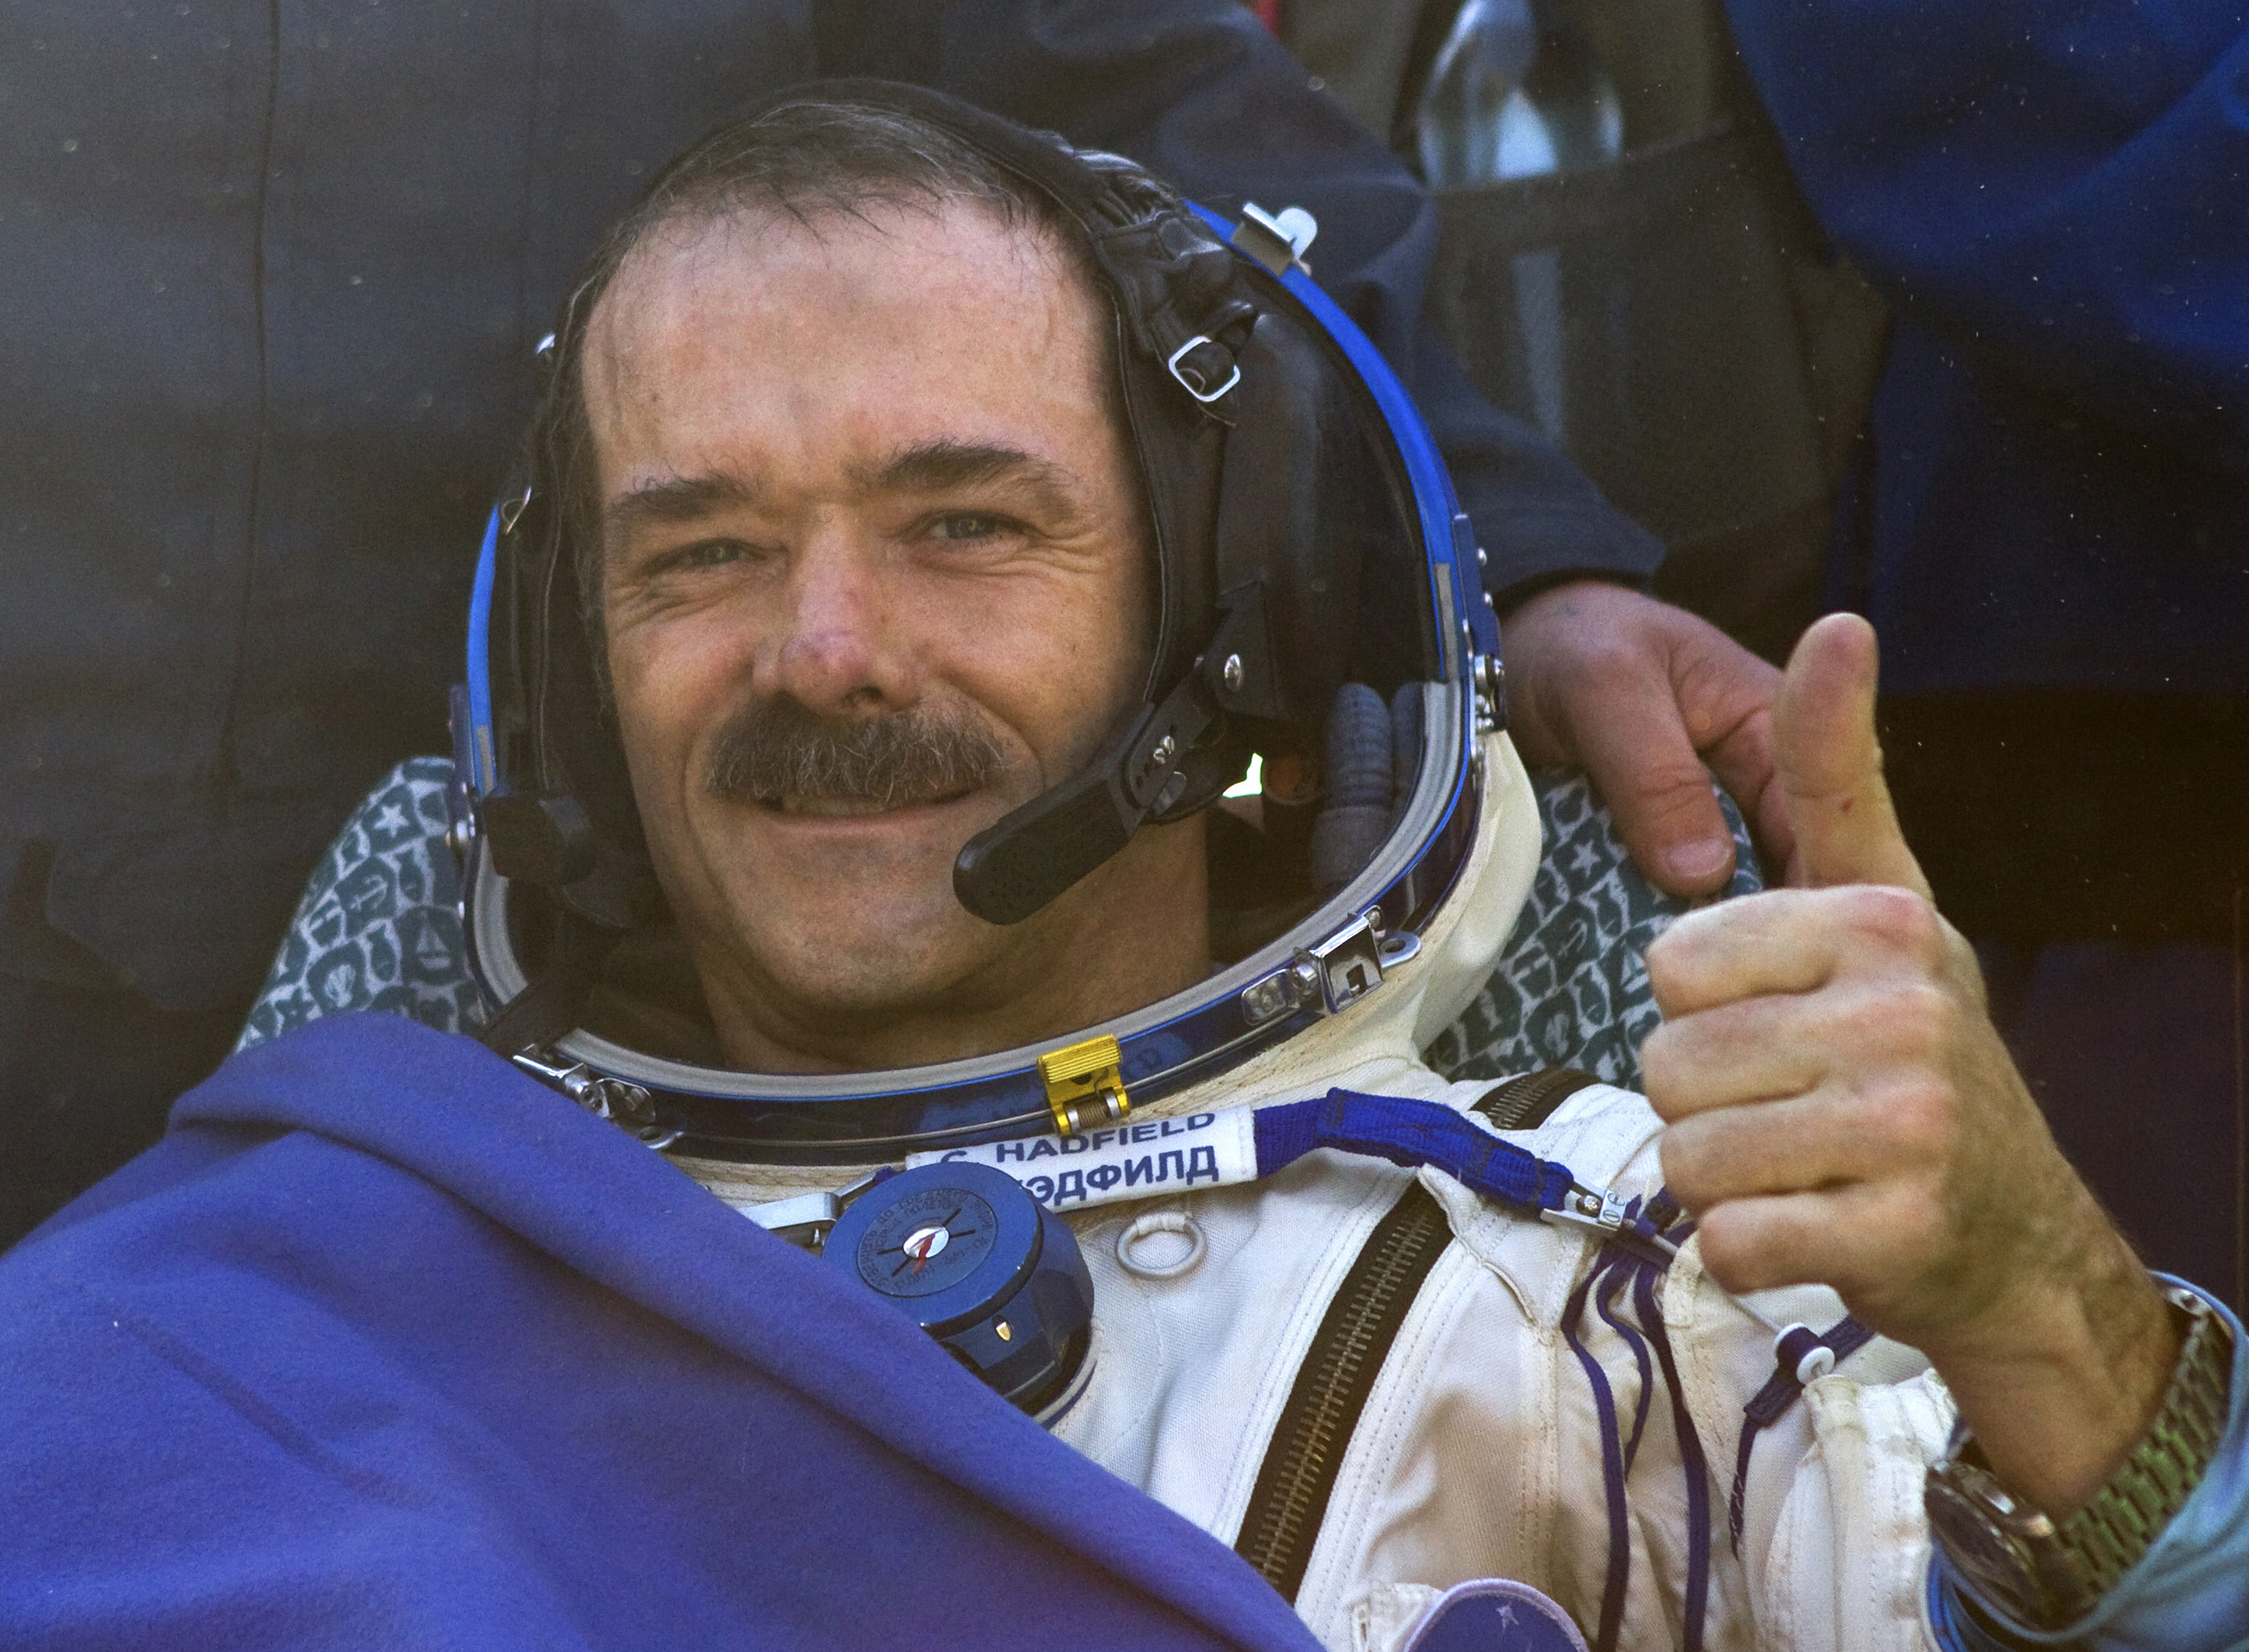 Canadian astronaut Chris Hadfield gestures after the Russian Soyuz space capsule landed some 150 kilometers (94 miles) southeast of the town of Dzhezkazgan in central Kazakhstan, Tuesday, May 14, 2013. The Soyuz space capsule carrying a three-man crew returning from a five-month mission to the International Space Station landed safely Tuesday on the steppes of kazakhstan. (AP Photo/ Sergei Remezov, Pool)